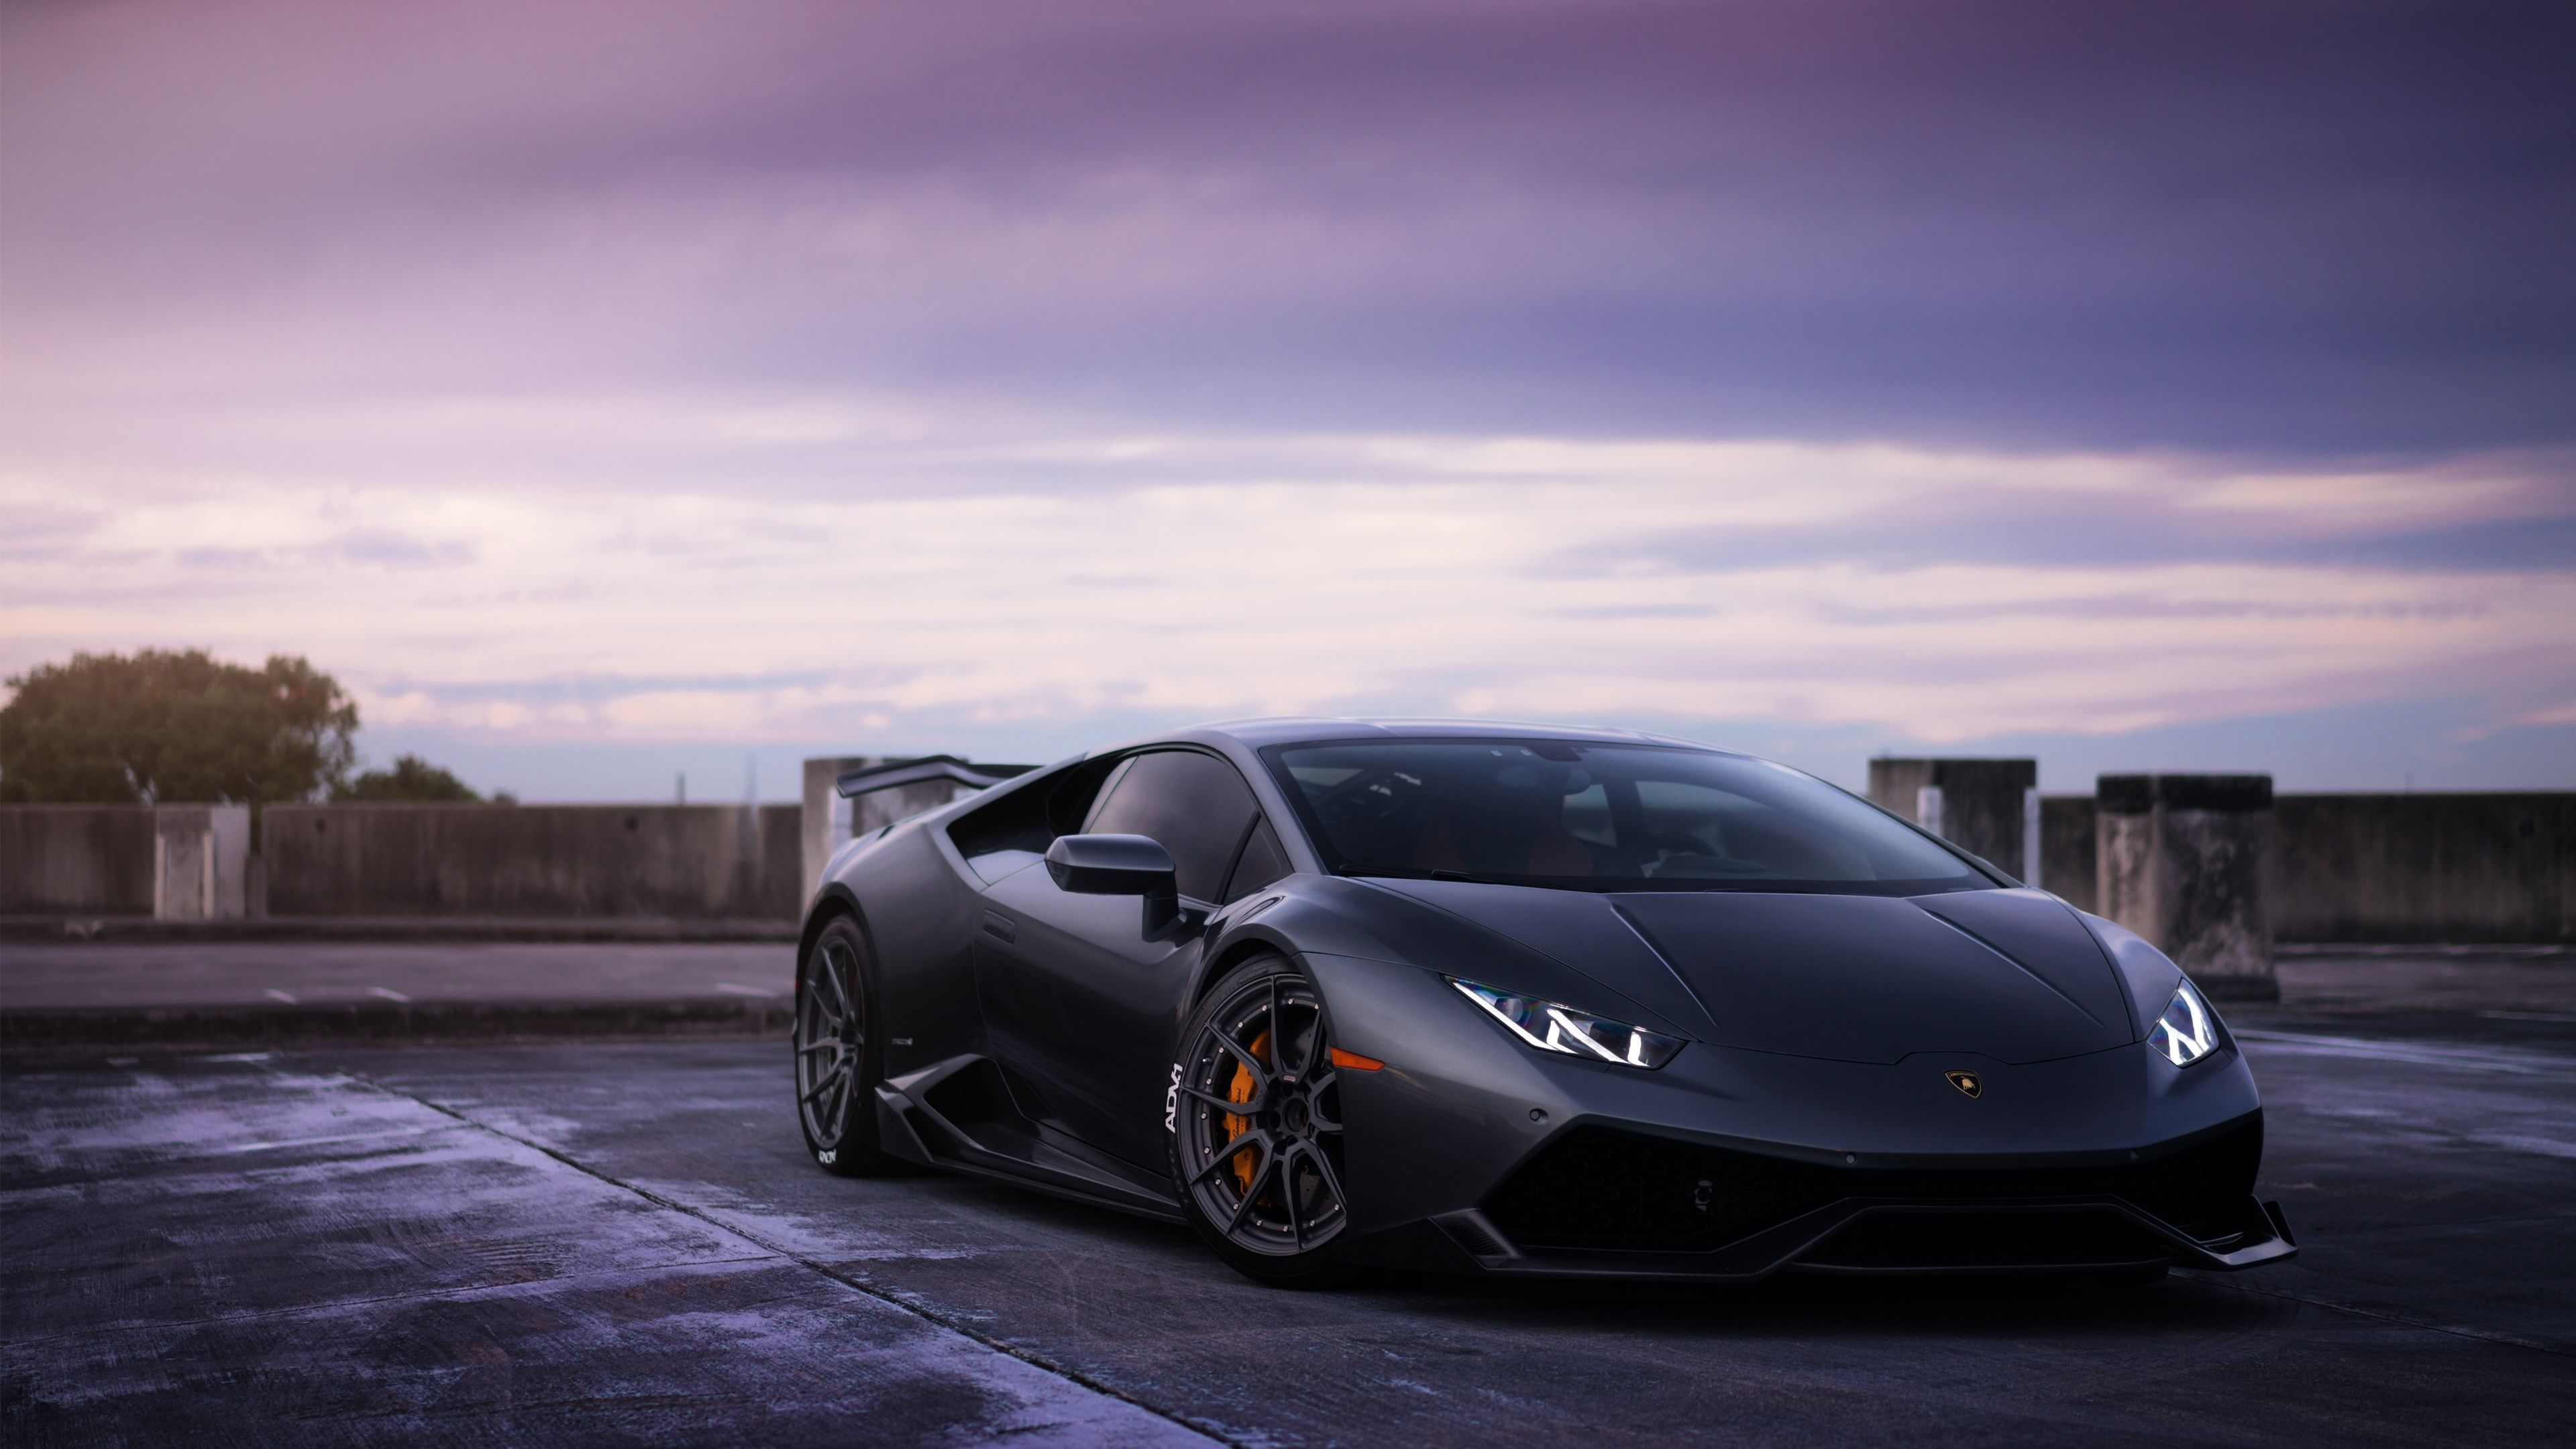 Lamborghini Huracan Wallpapers Images Vehicles Wallpapers 3840x2160